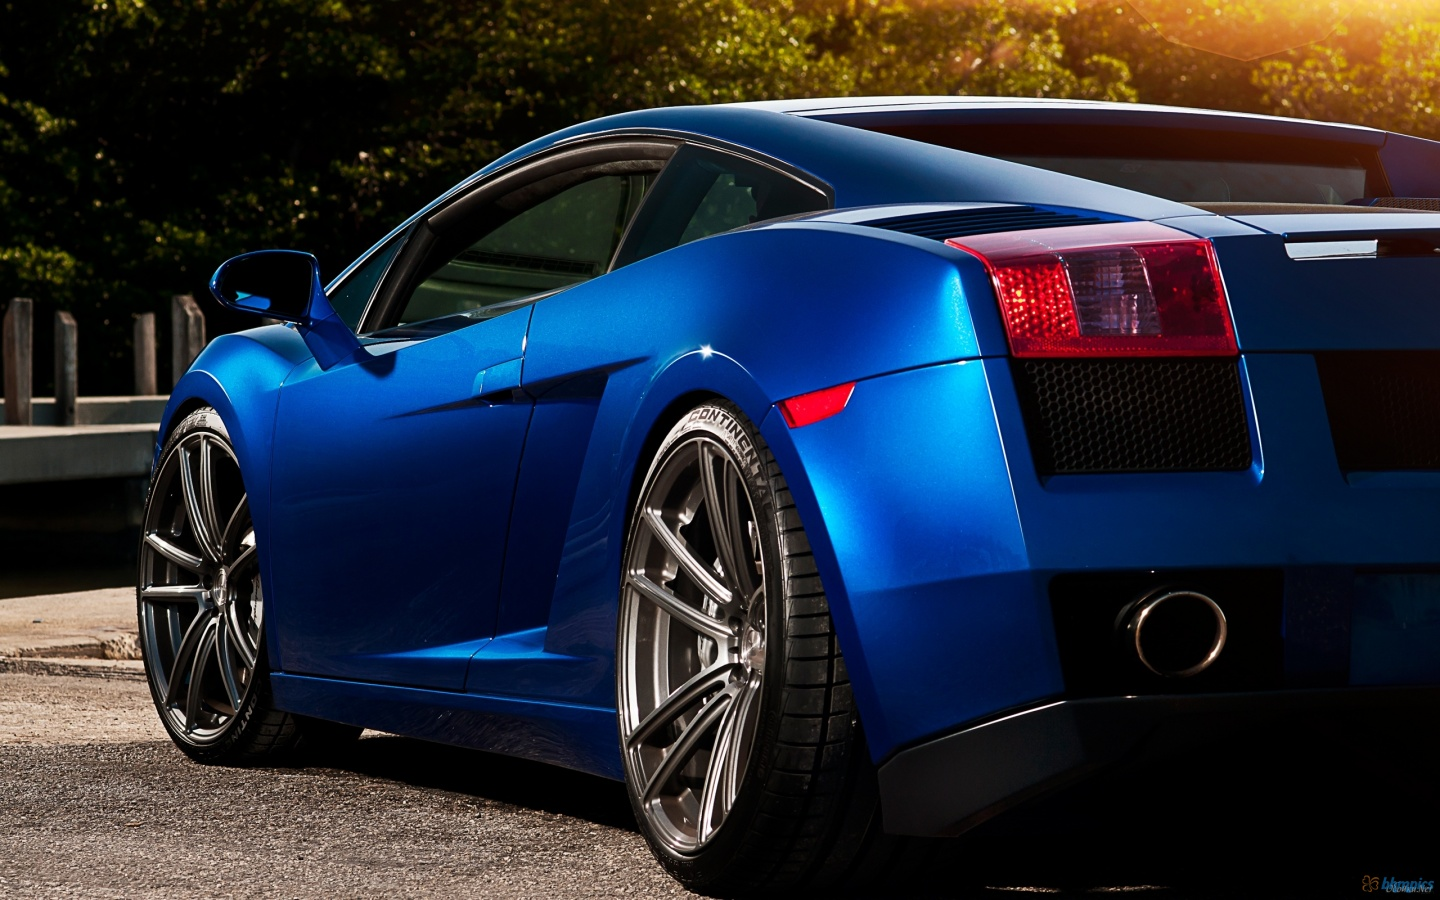 Blue-Lamborghini-1080p-wallpaper-wp3803312